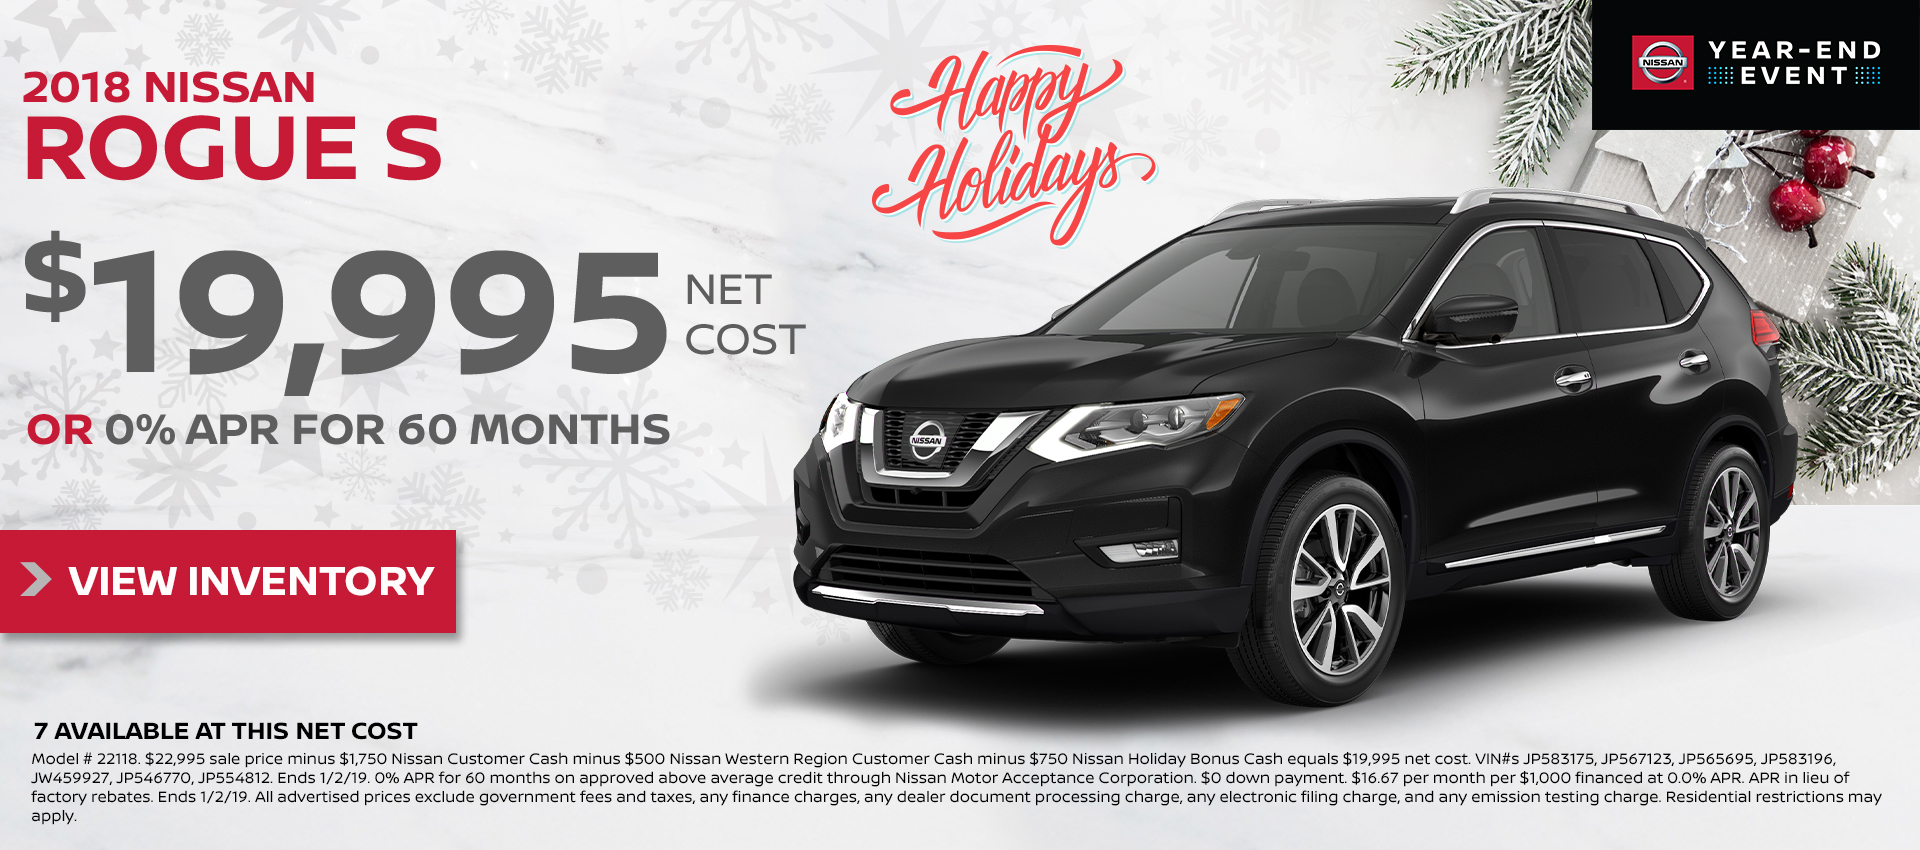 Mossy Nissan - Rogue $19,995 Purchase HP